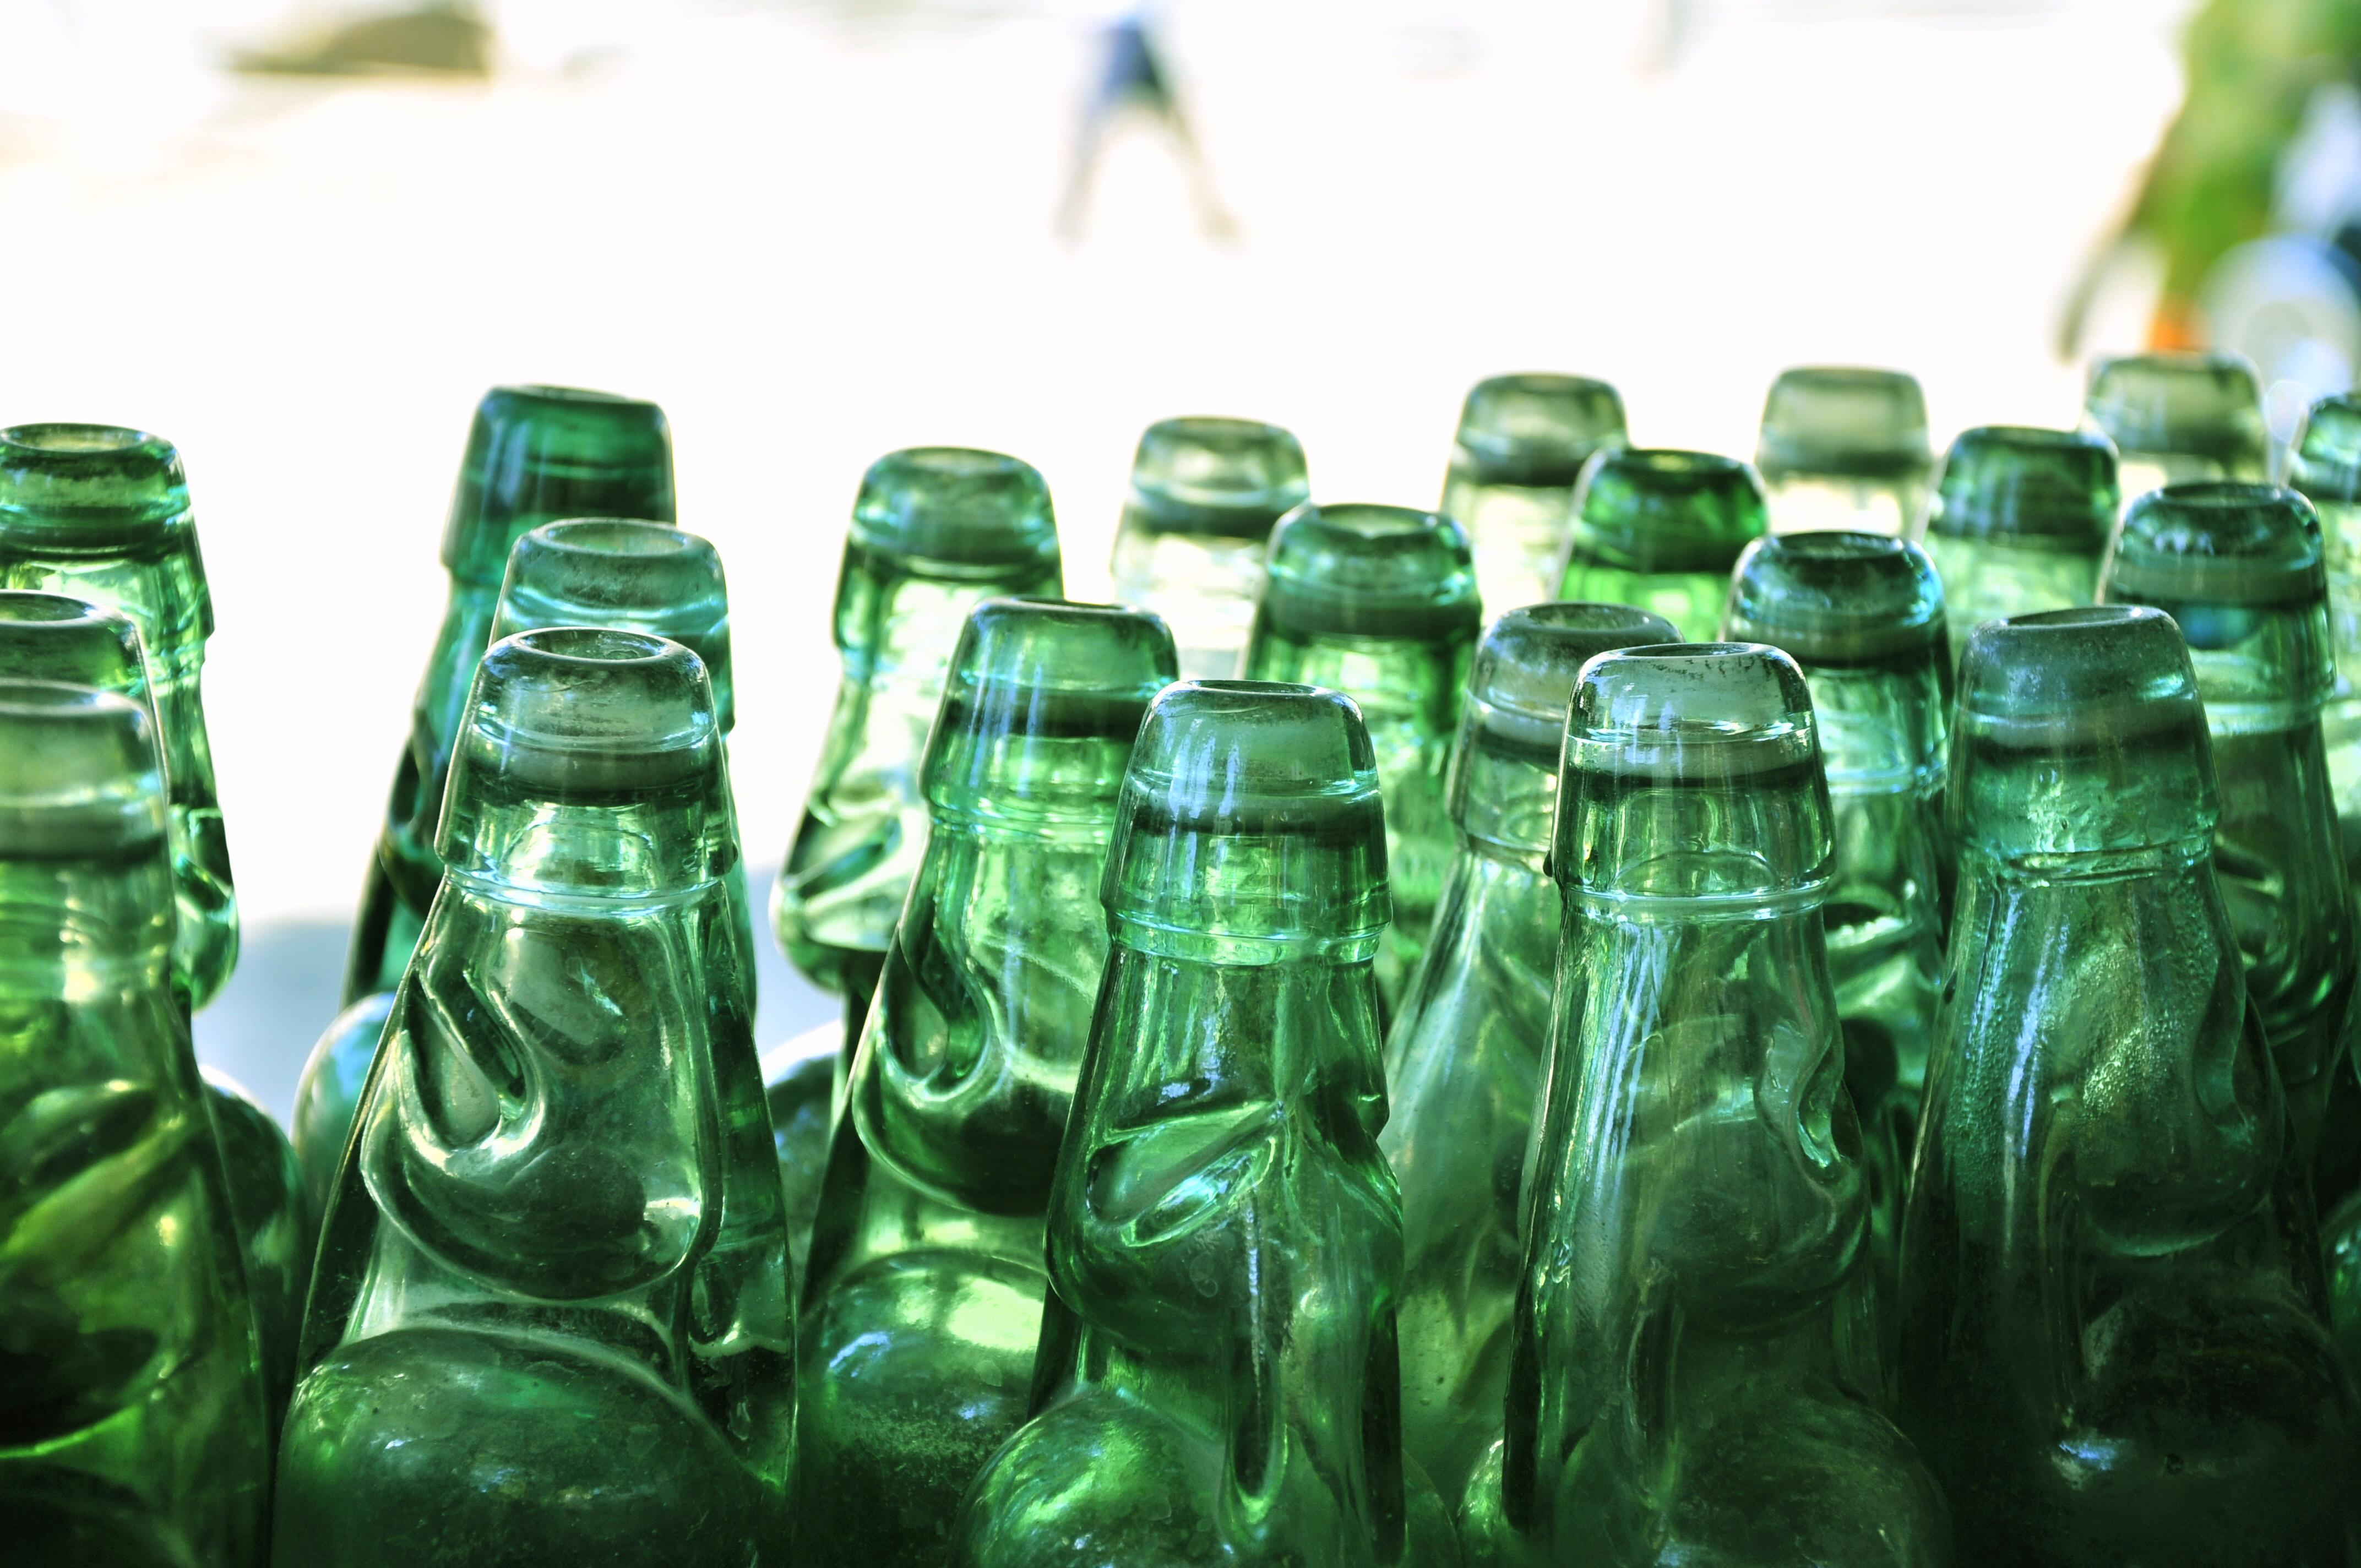 Green Glass Bottle Alcoholic Drink